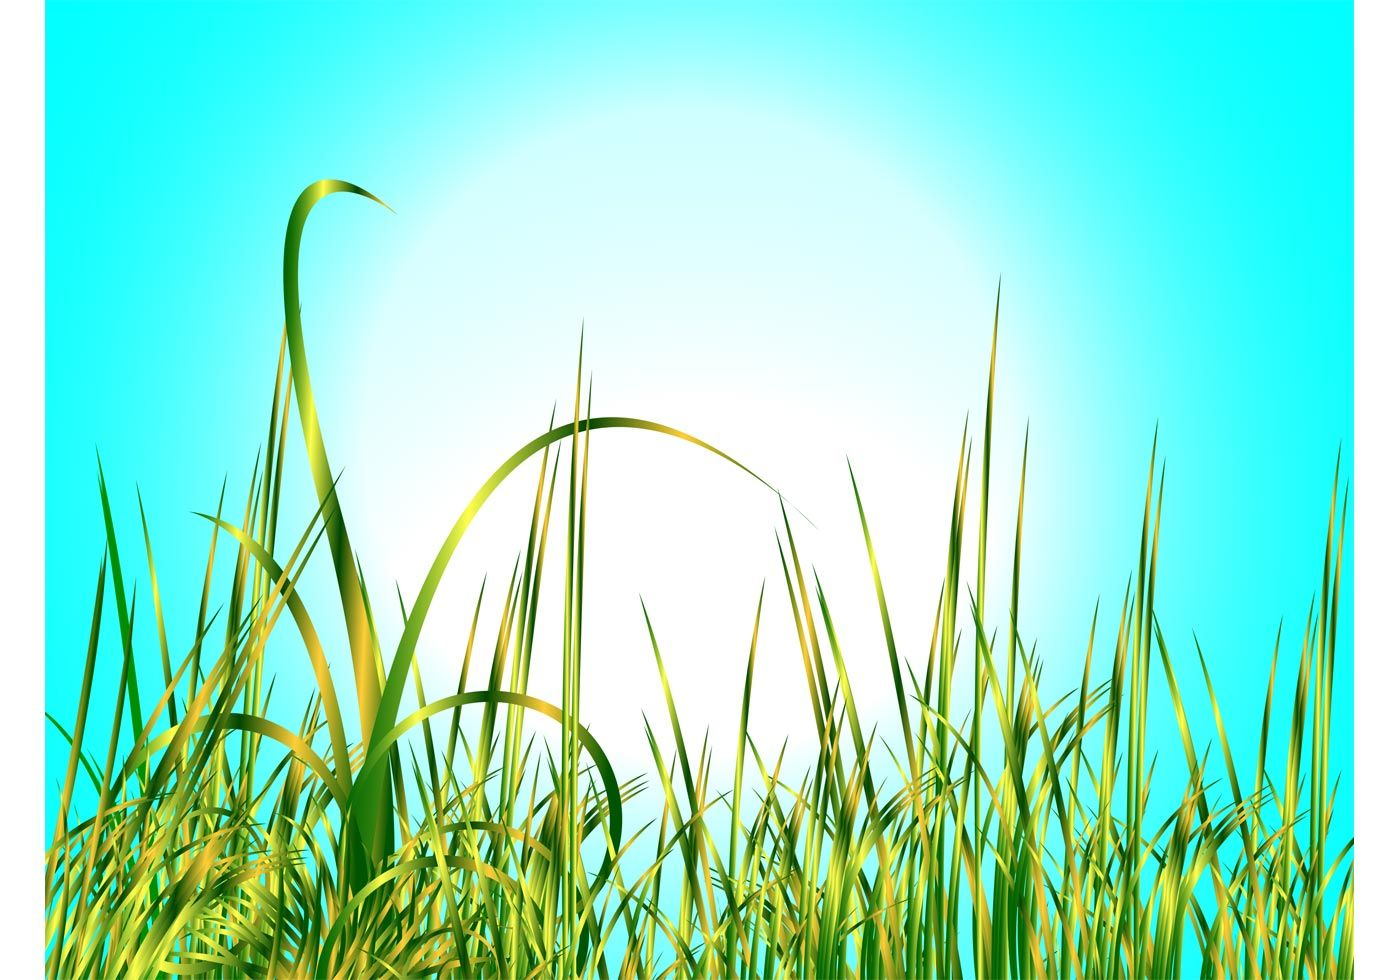 1400x980 Natural Vector Footage Of A Group Of Very Tall Grass Stems. Bright